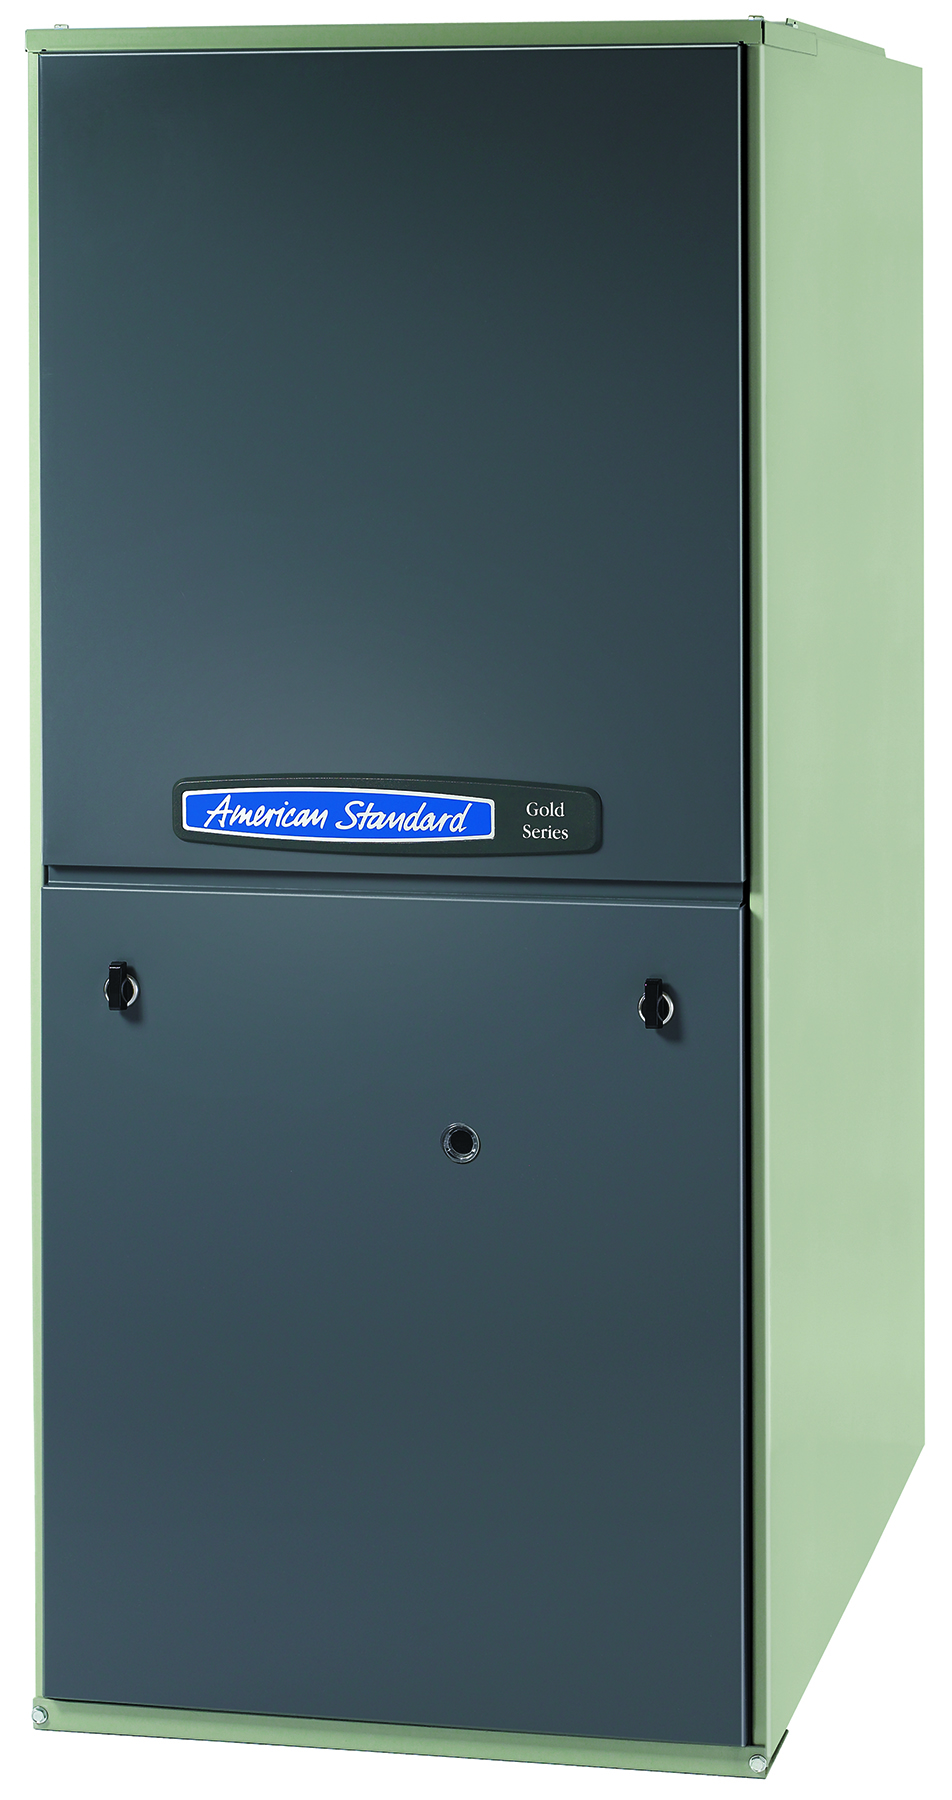 Furnaces products in spokane wa air control heating and for How to choose a gas furnace